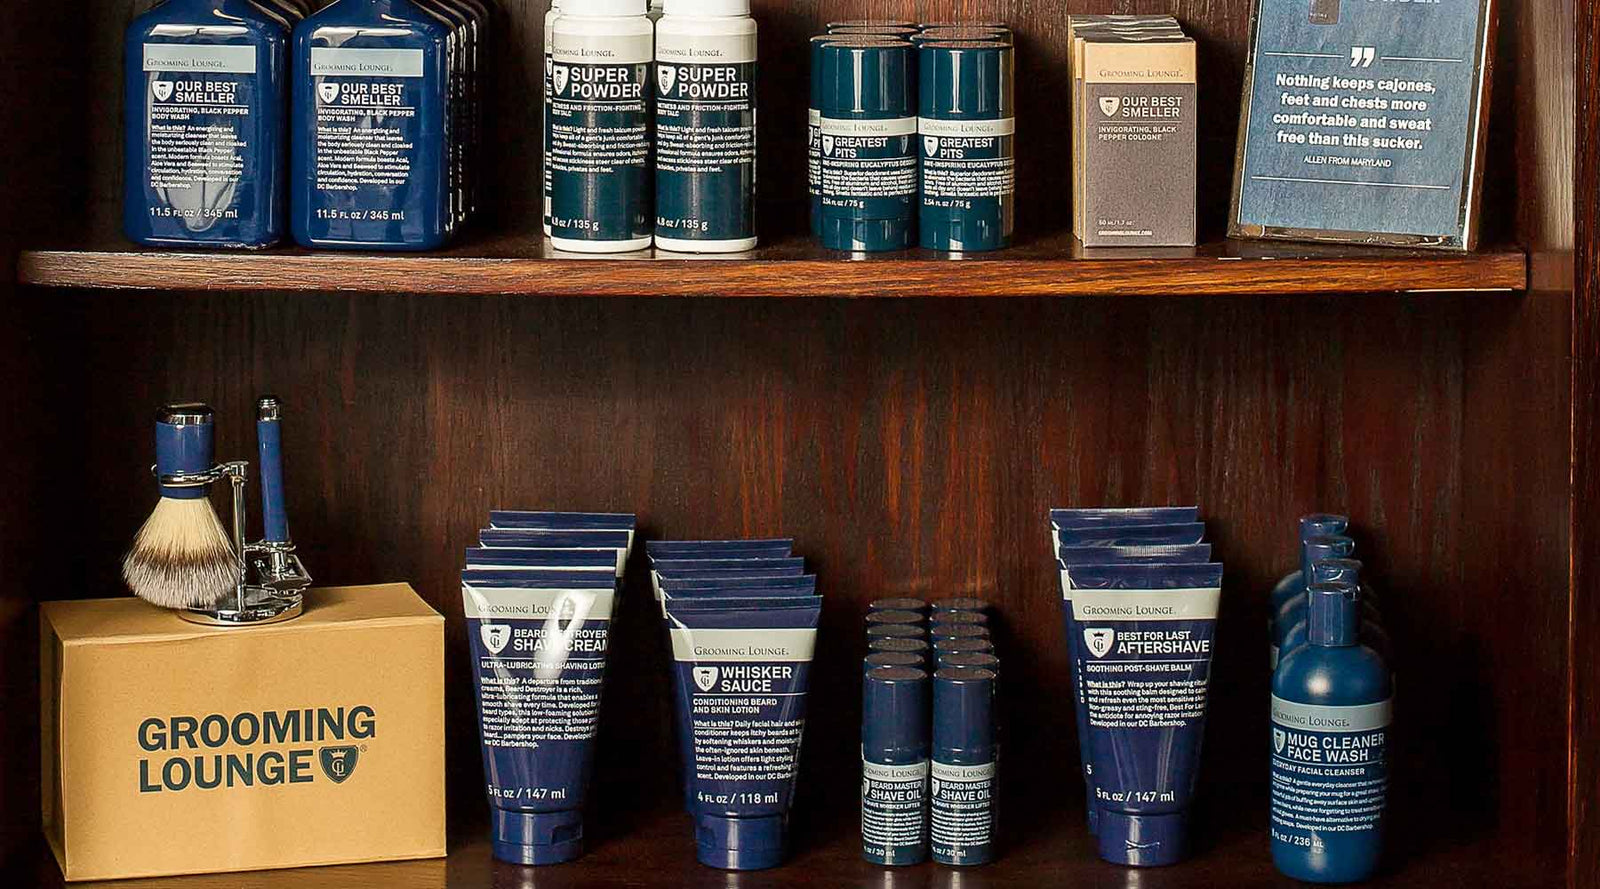 Men S Acne Products Acne Care Treatment For Men Grooming Lounge